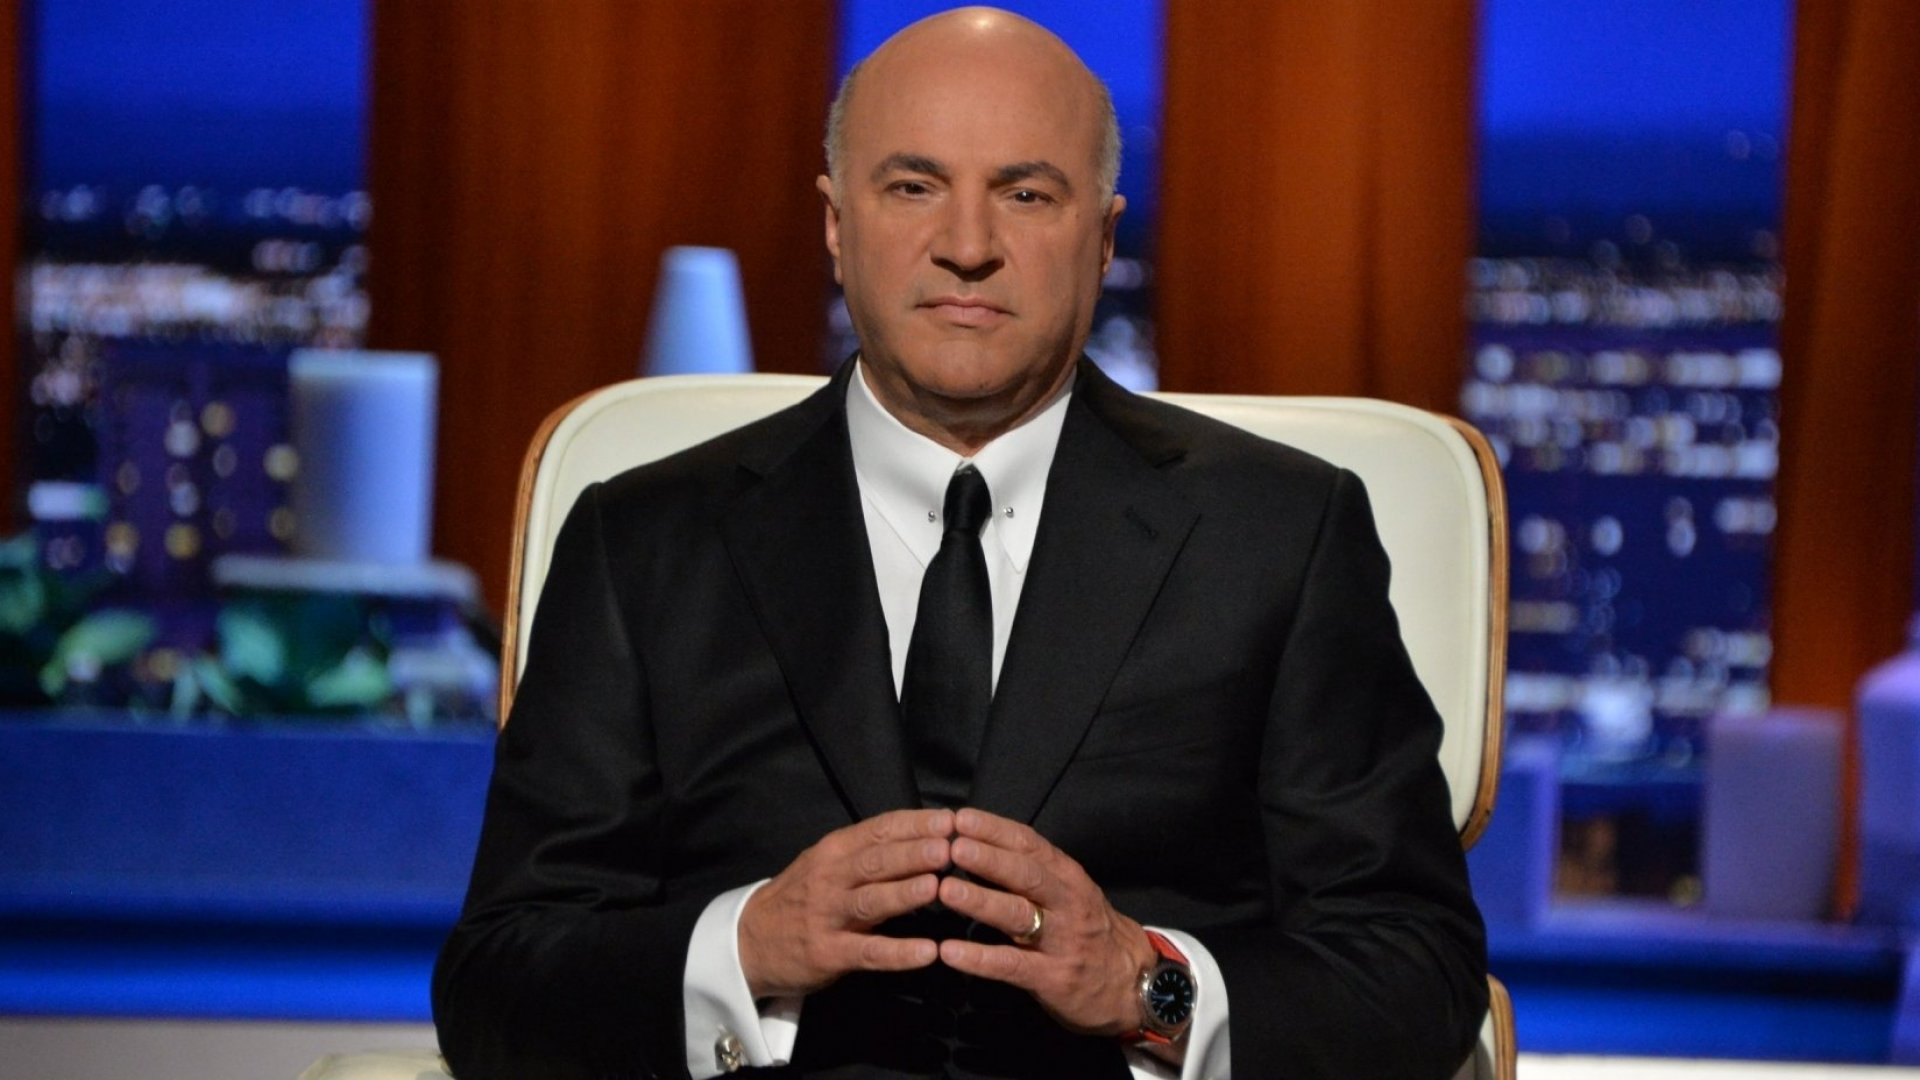 Kevin O'Leary says DeFi will take a lot of jobs